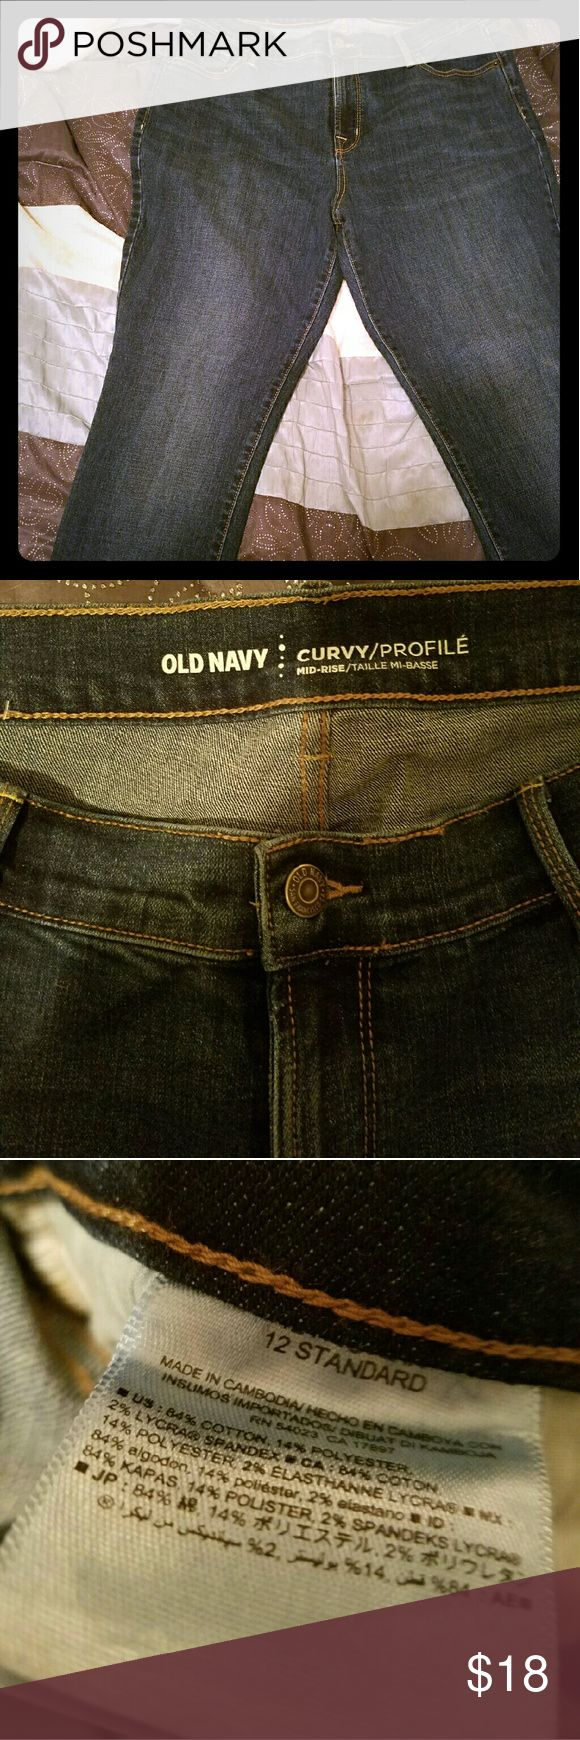 Women's Old Navy jeans size 12 NWOT Old Navy women's jeans size 12 slim fit. Medium to dark blue. Old Navy Jeans Skinny